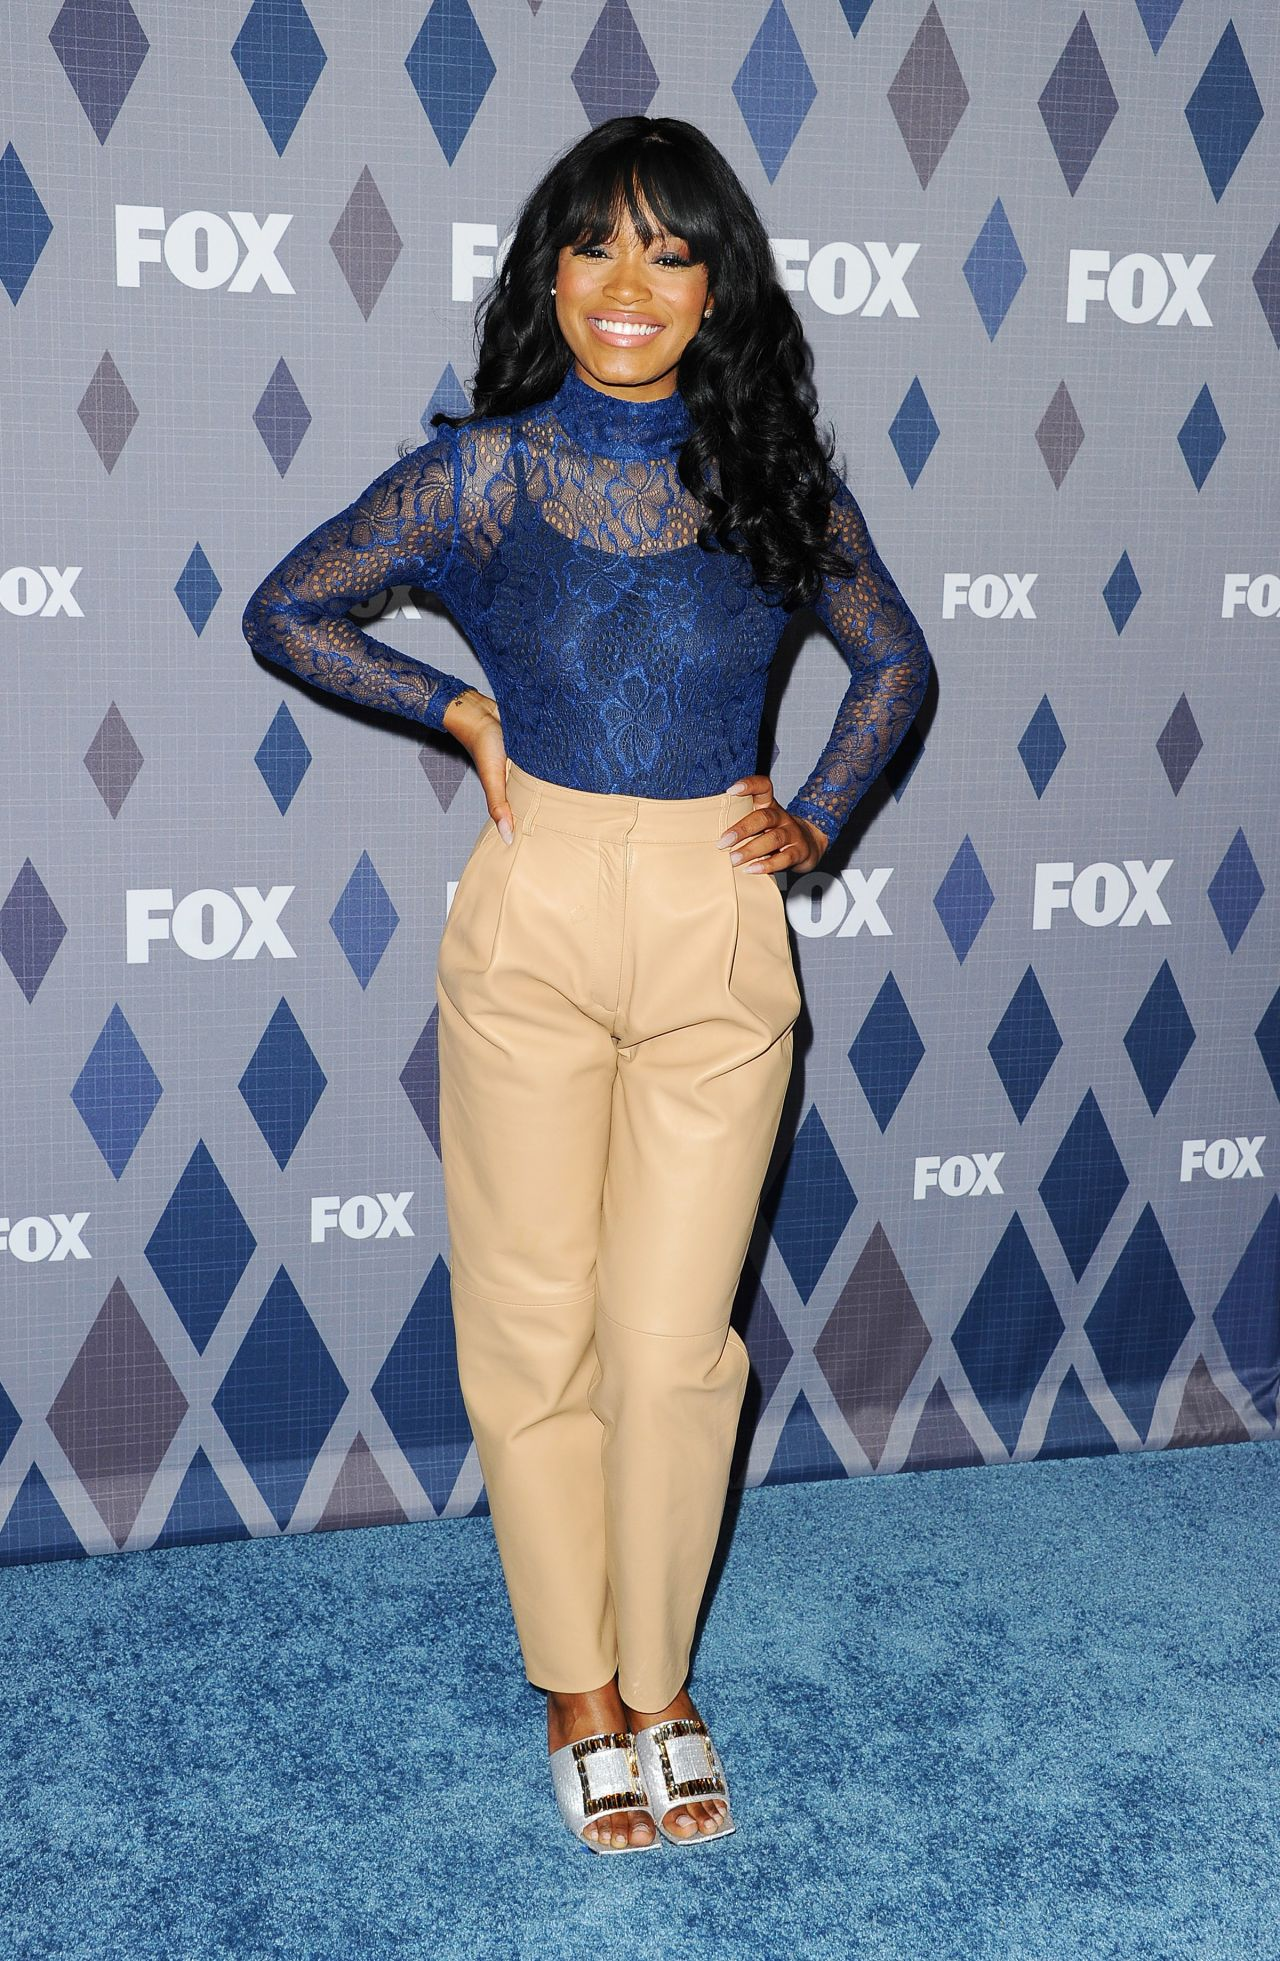 keke-palmer-fox-tca-winter-2016-all-star-party-in-pasadena-ca-1